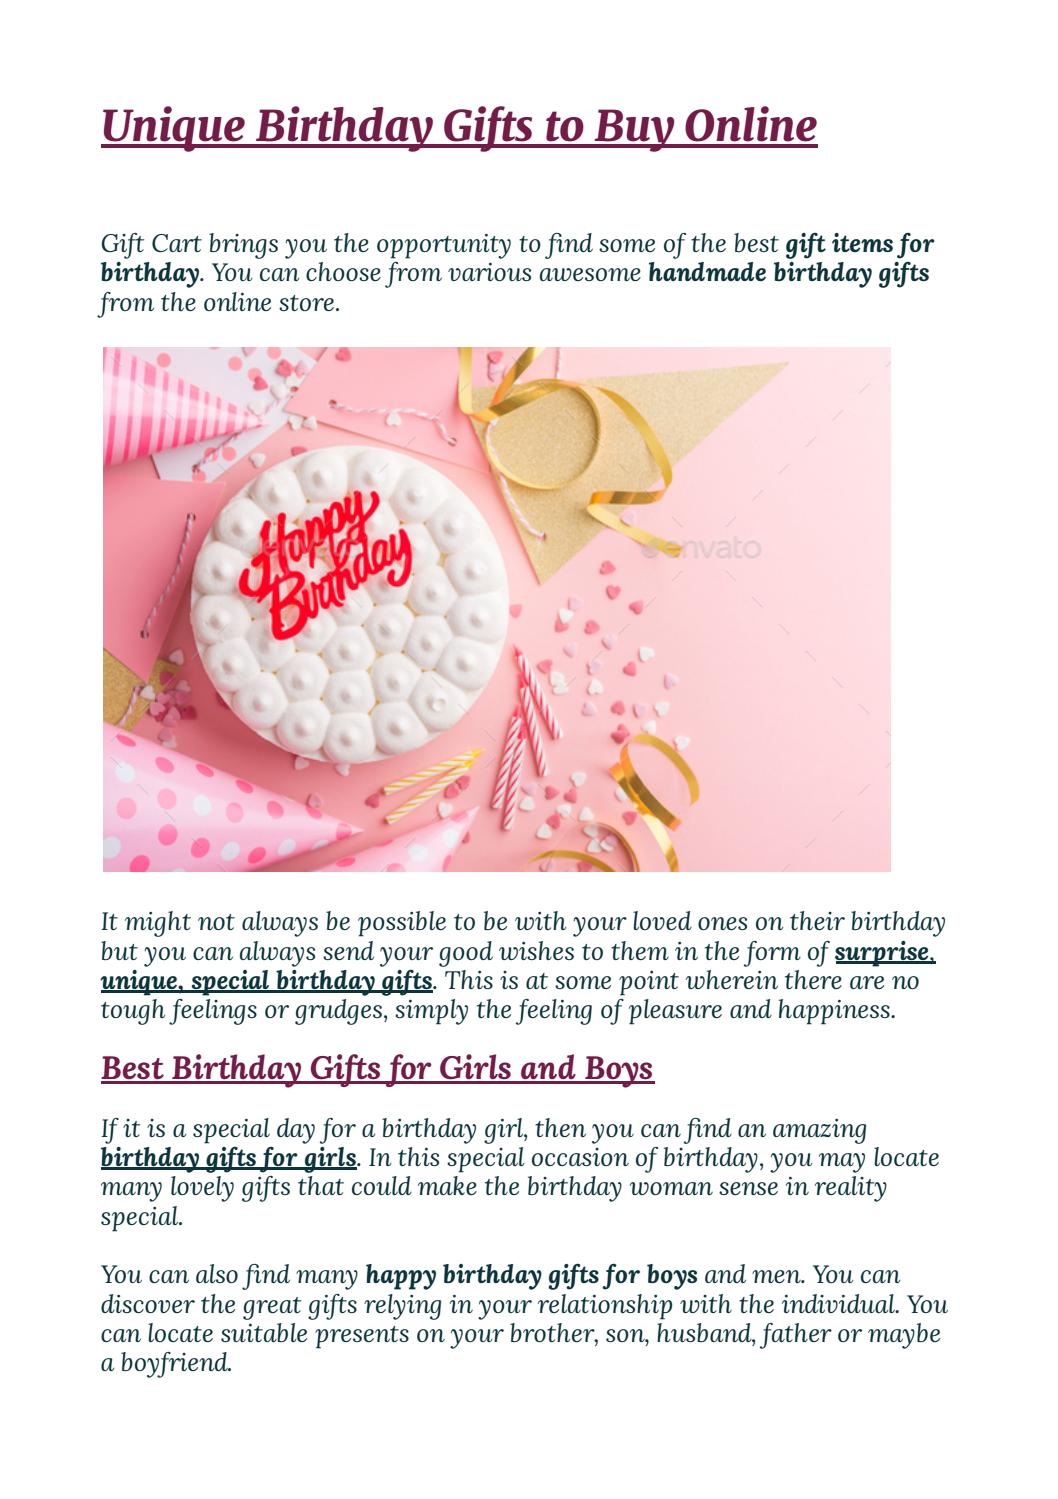 Buy Send Best Birthday Gifts For Girls Boys By Tiedribbons Issuu